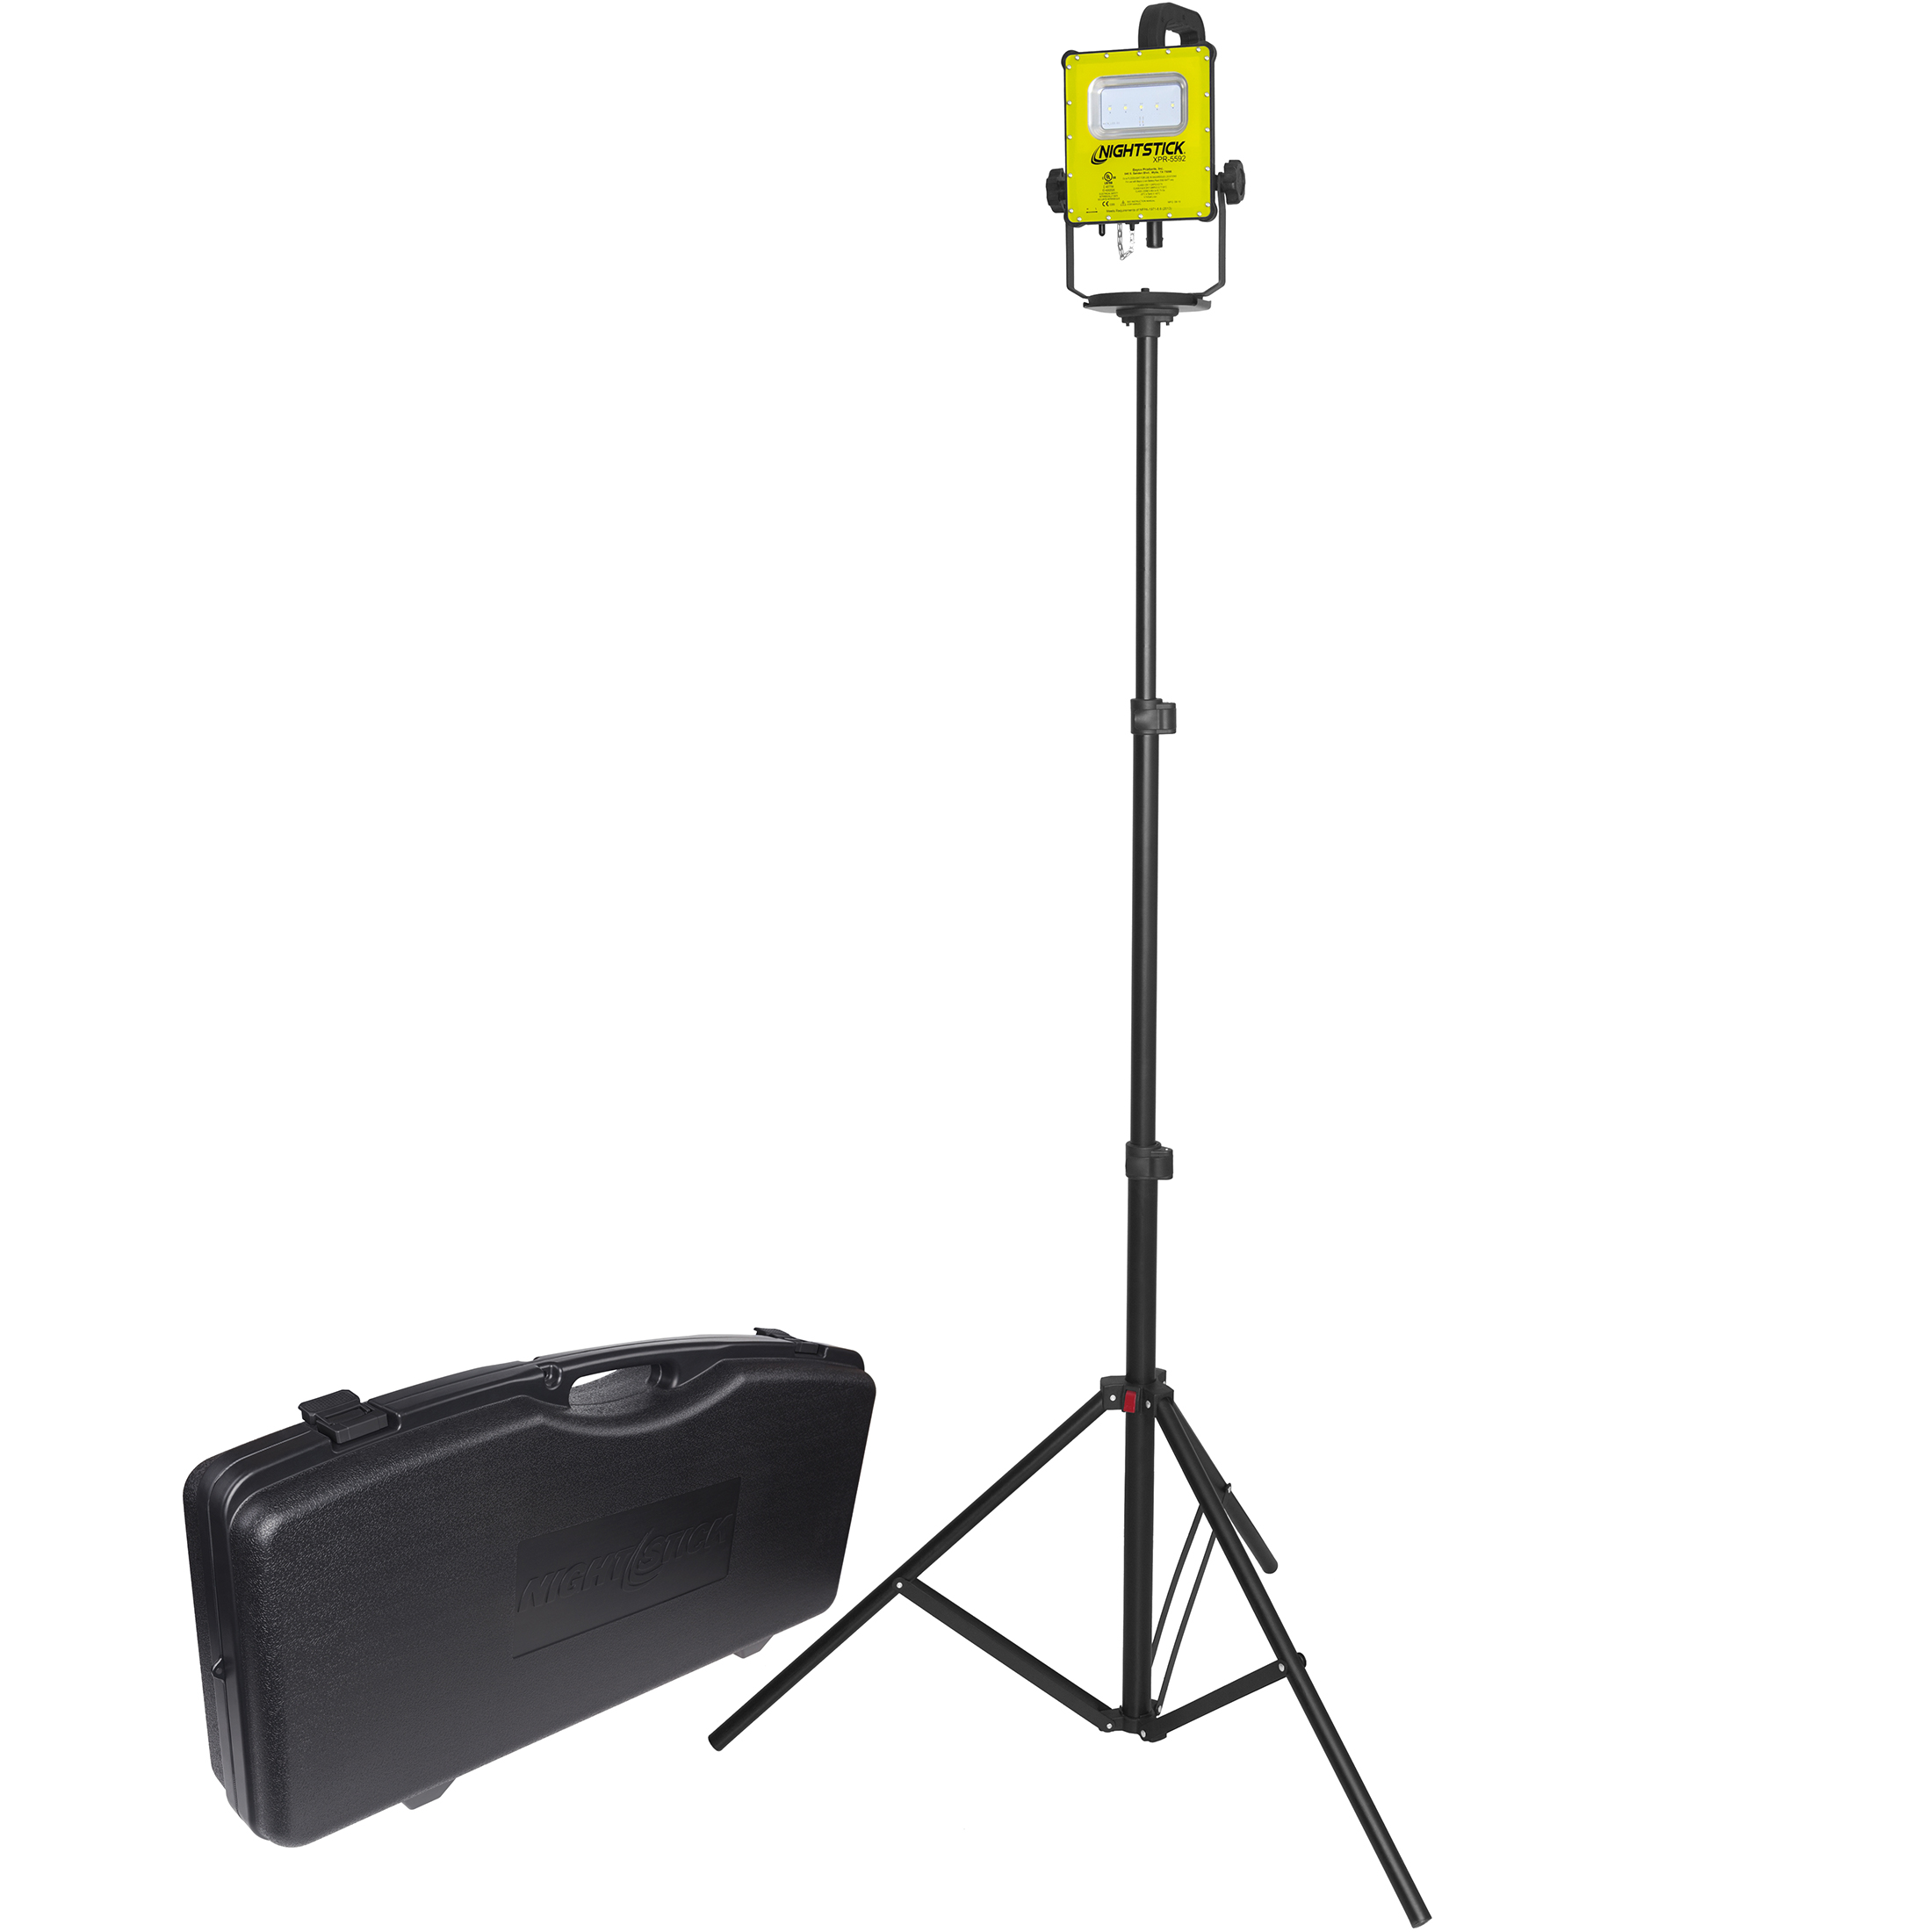 XPR-5592GCX Scene Light Kit with 6' Tripod and Case